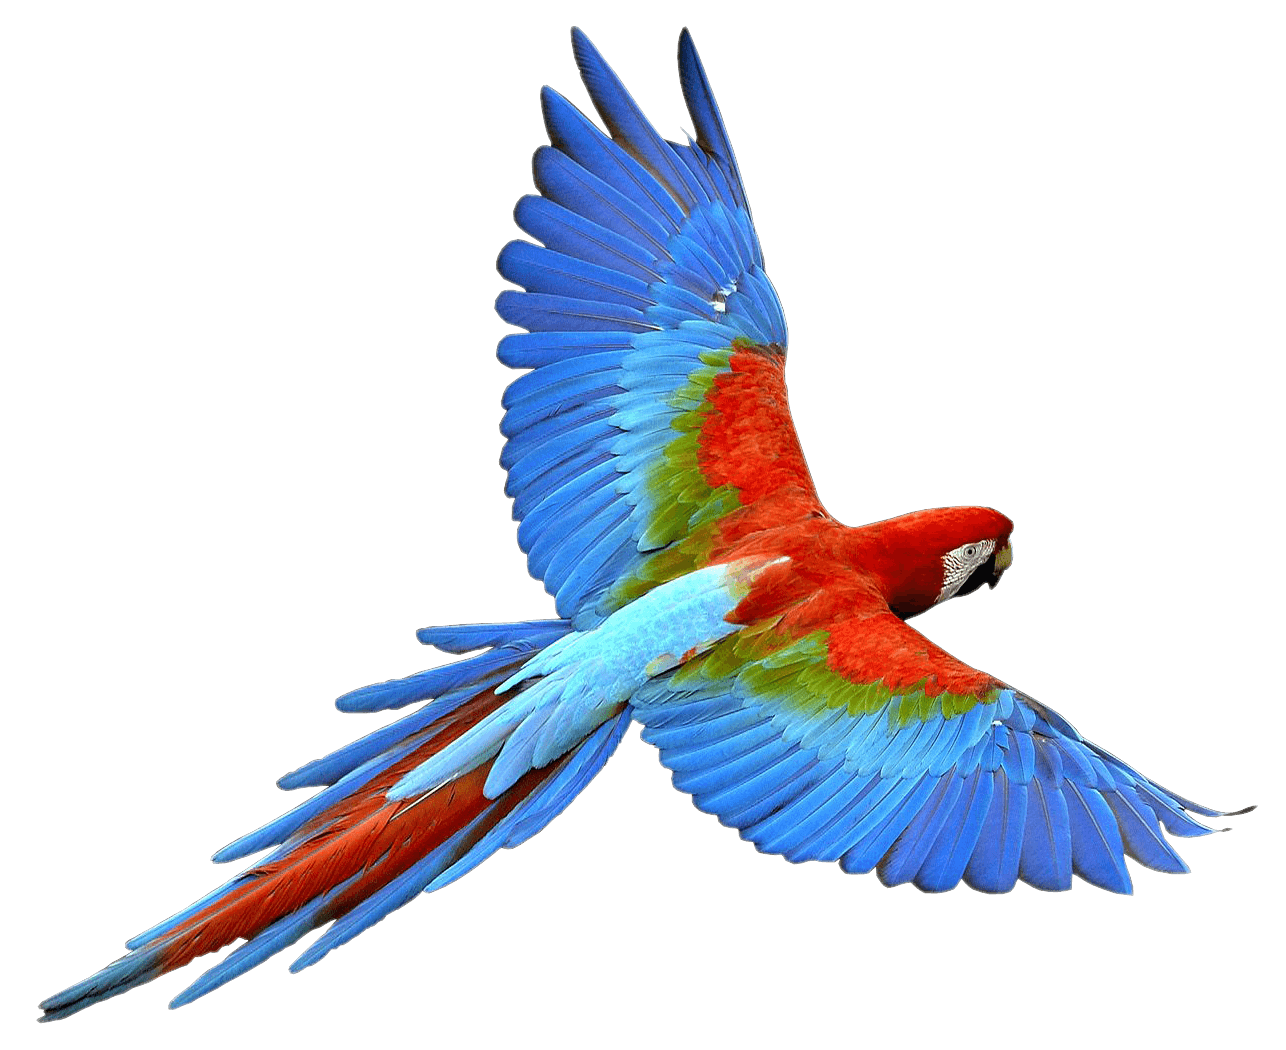 Parrots Png - Flying Parrot Red Blue